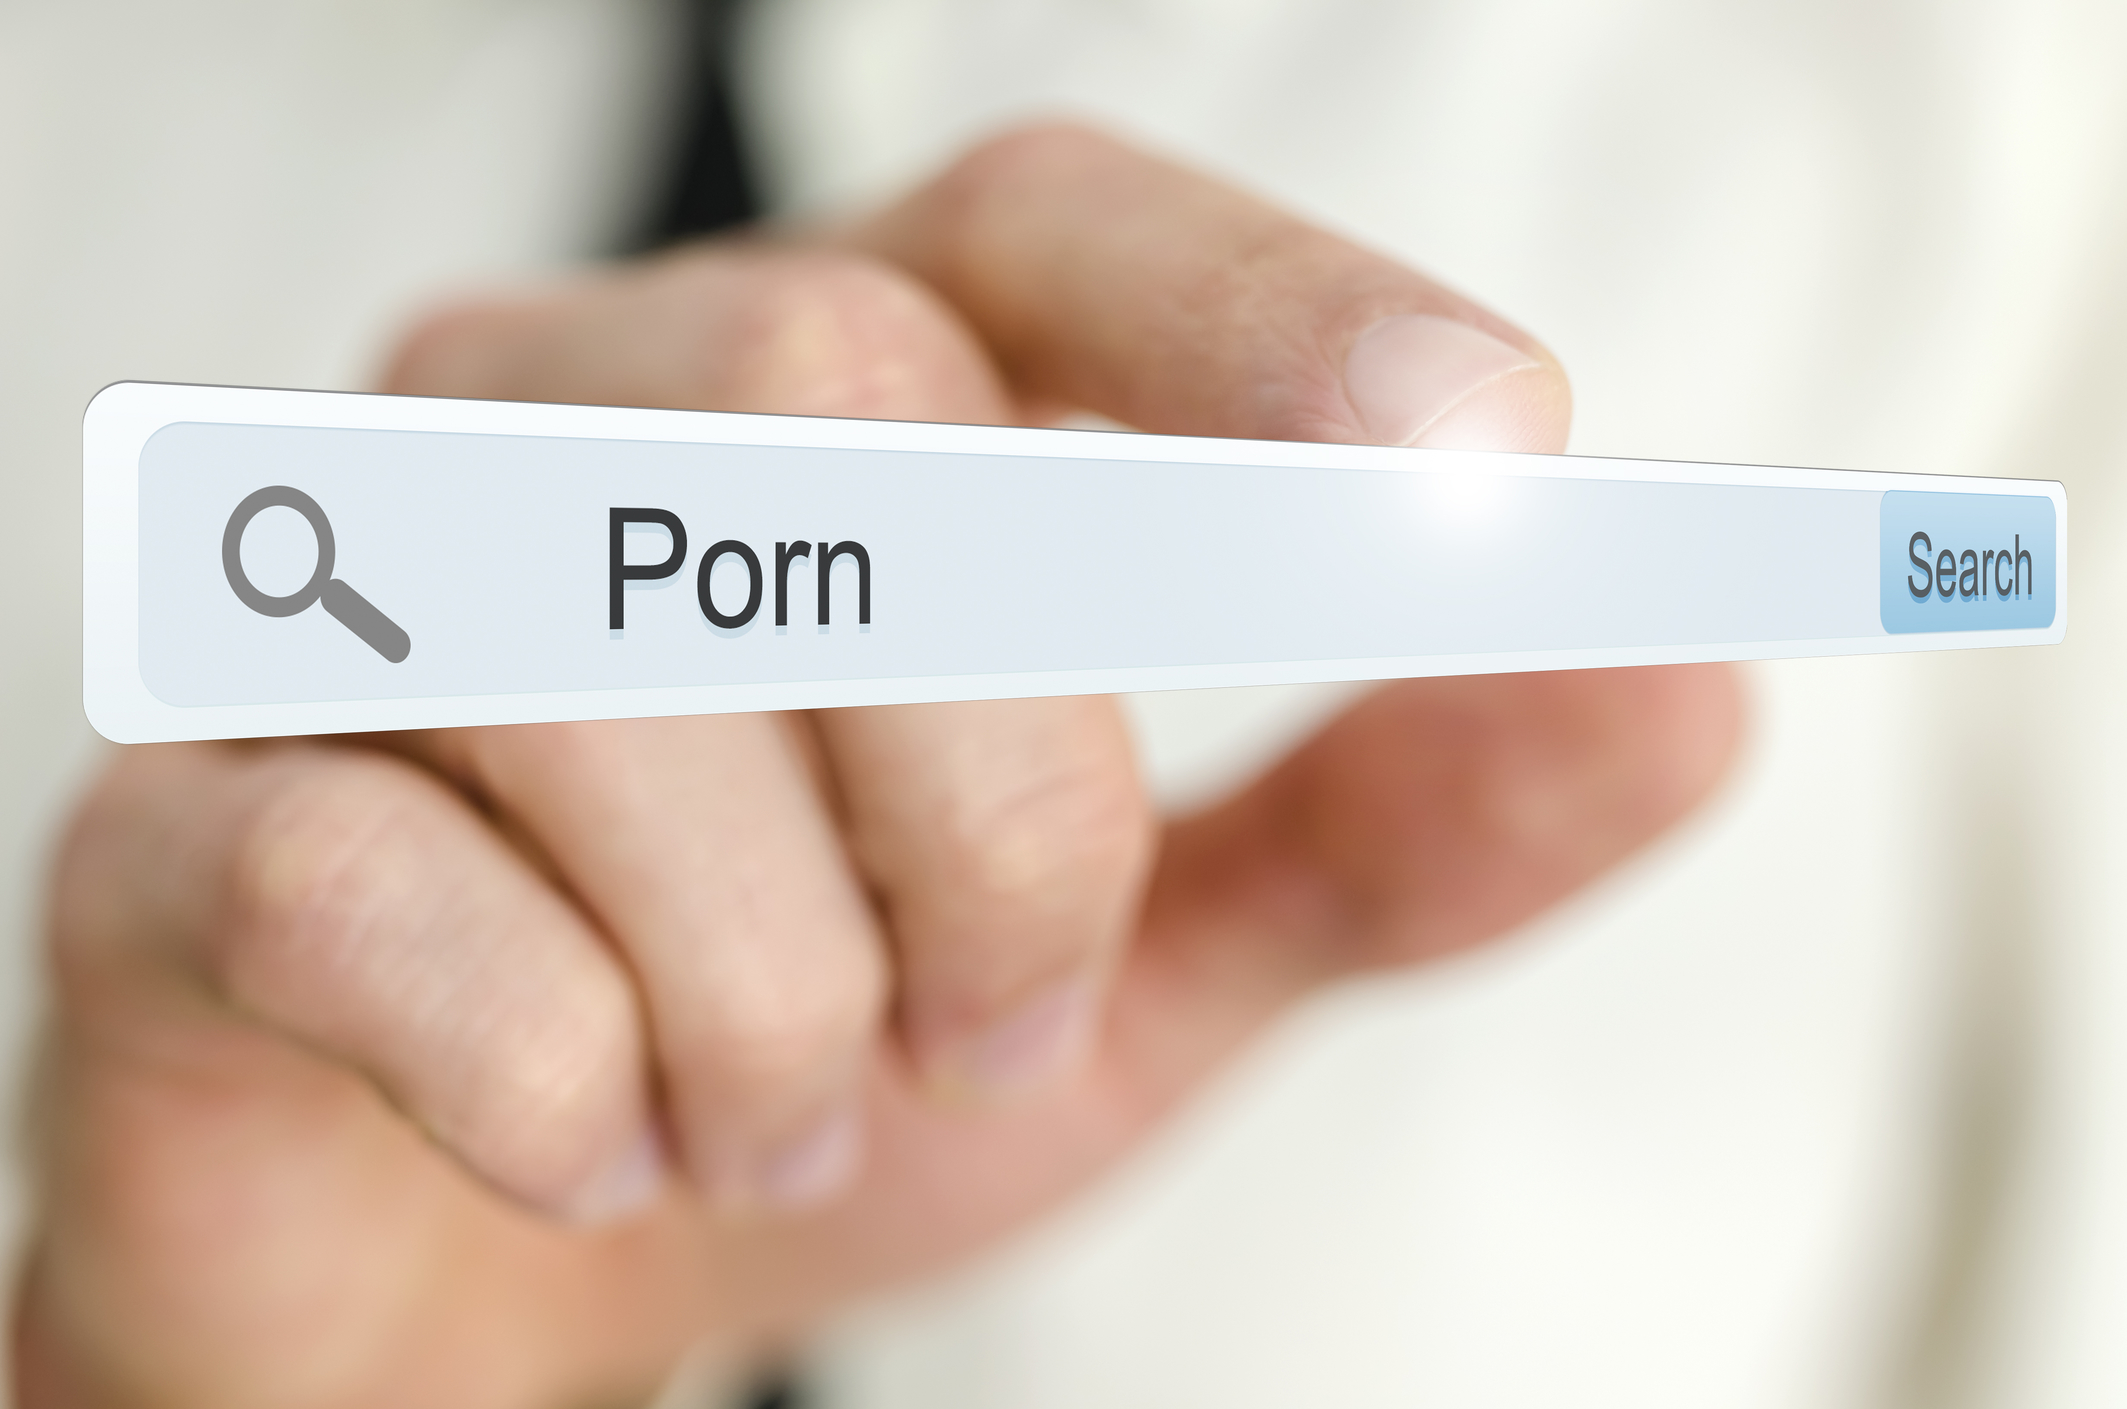 Virtual Sex and Pornography – Does God Care?